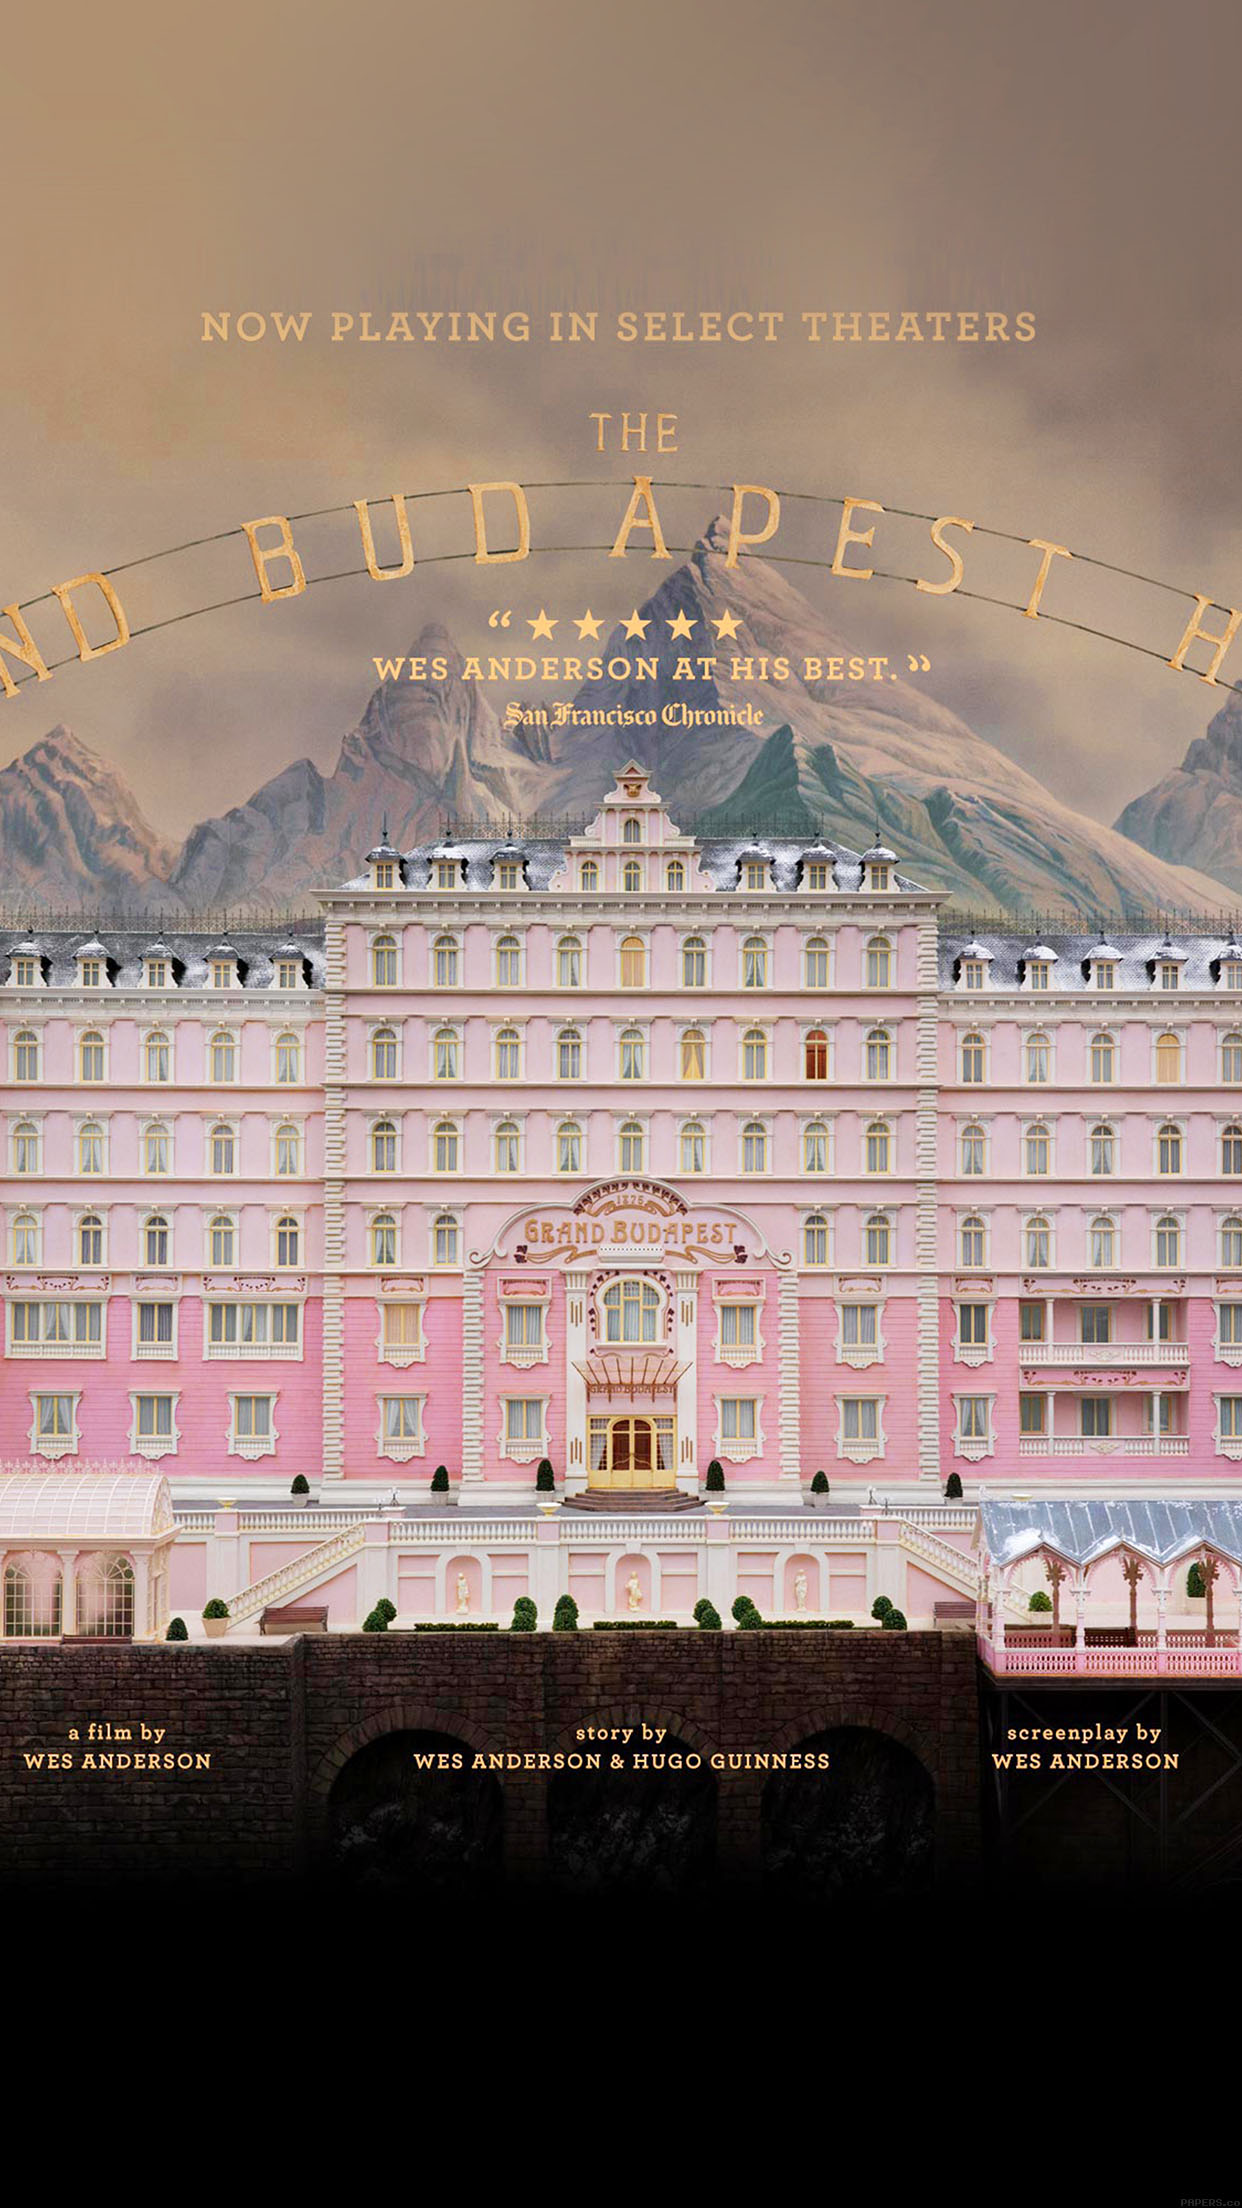 Wallpaper Grand Budapest Hotel Film Poster Android wallpaper